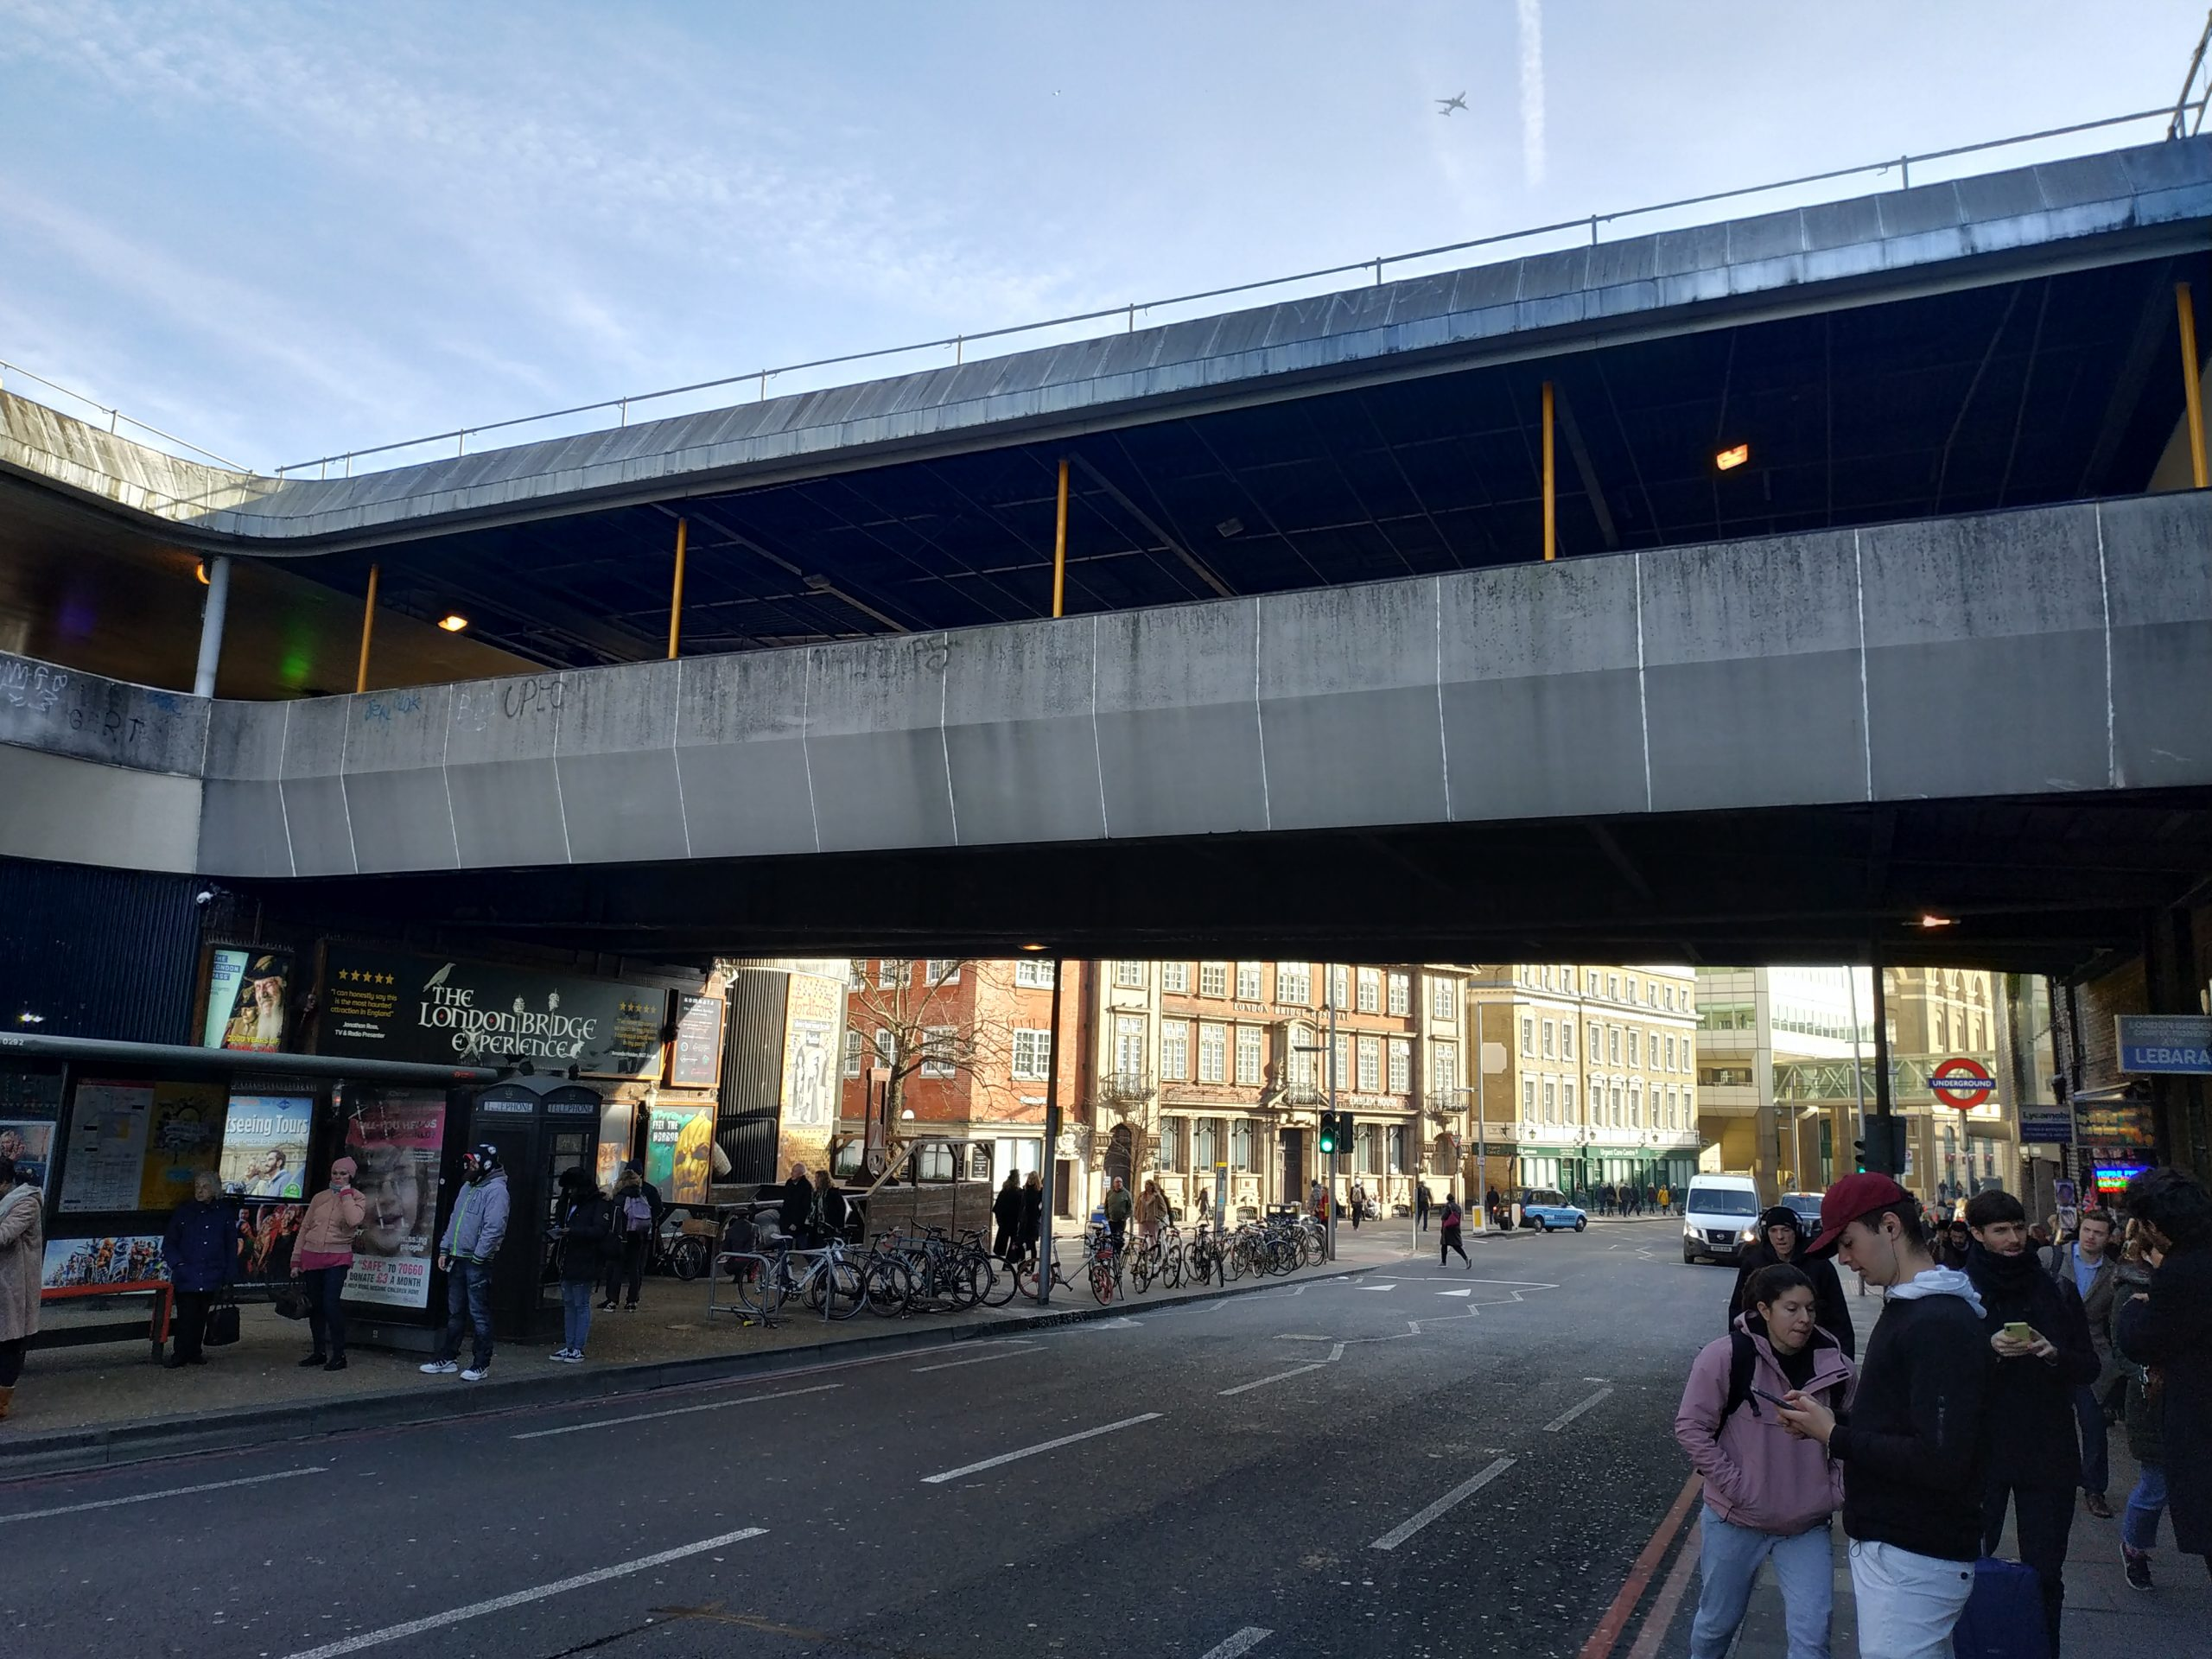 Cycle Highway 4 extension to London Bridge station under consultation